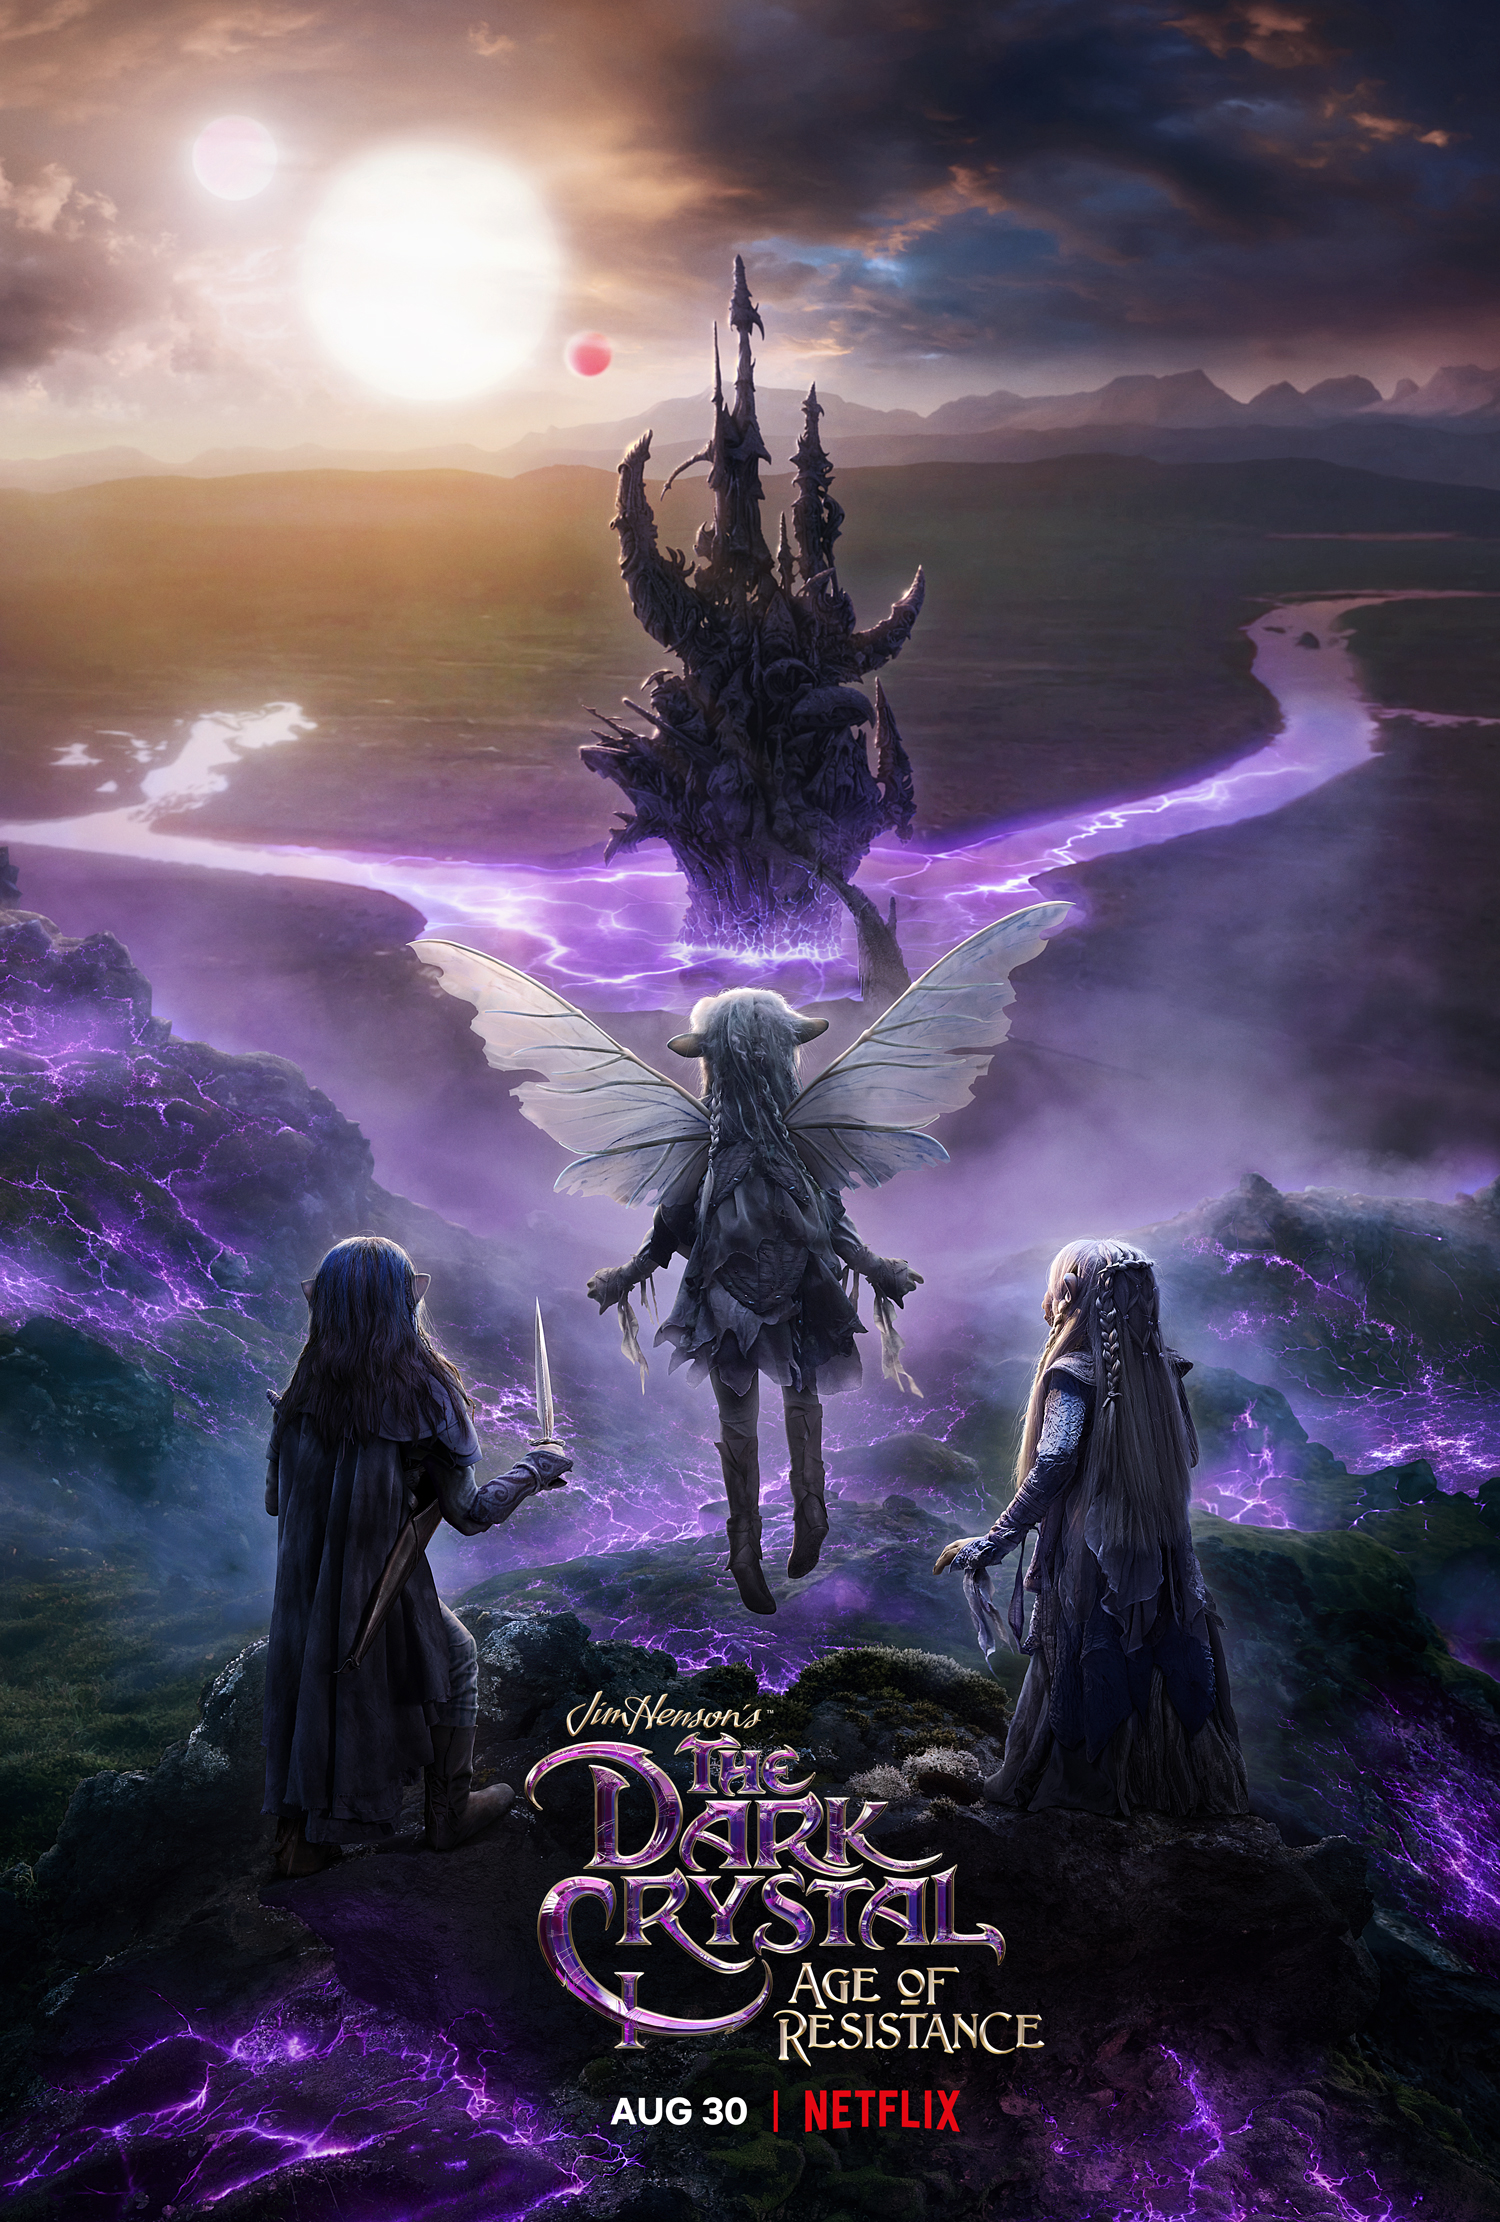 netflix-s-the-dark-crystal-age-of-resistance-trailer-is-absolutely-magical__715162_.jpg